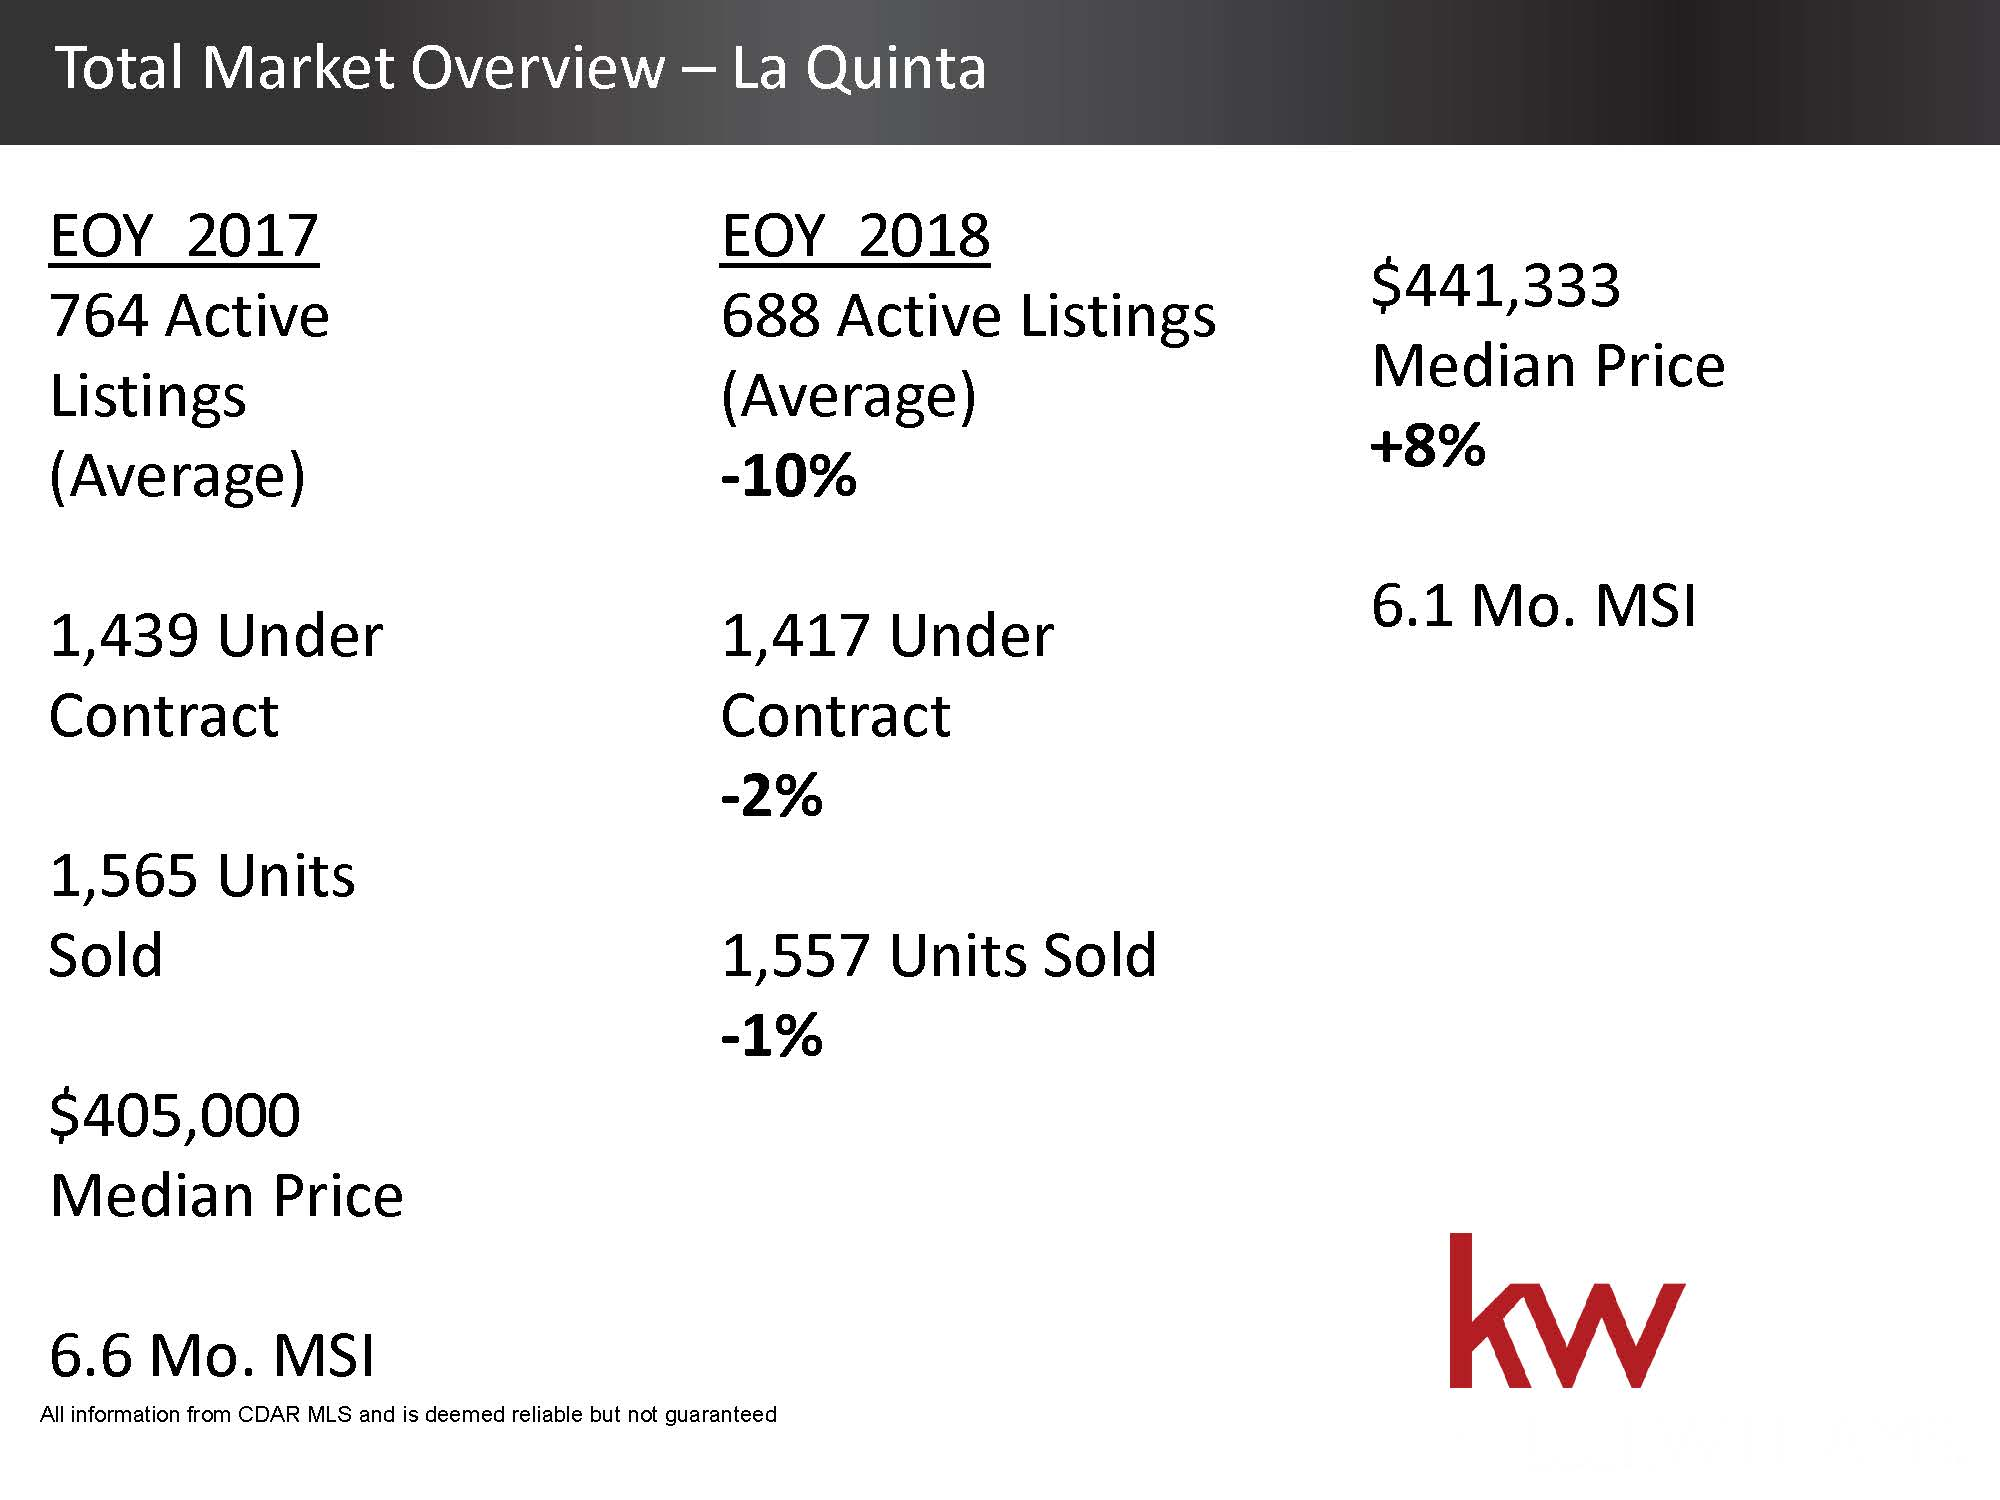 Total Housing Market 2018 Overview - La Quinta